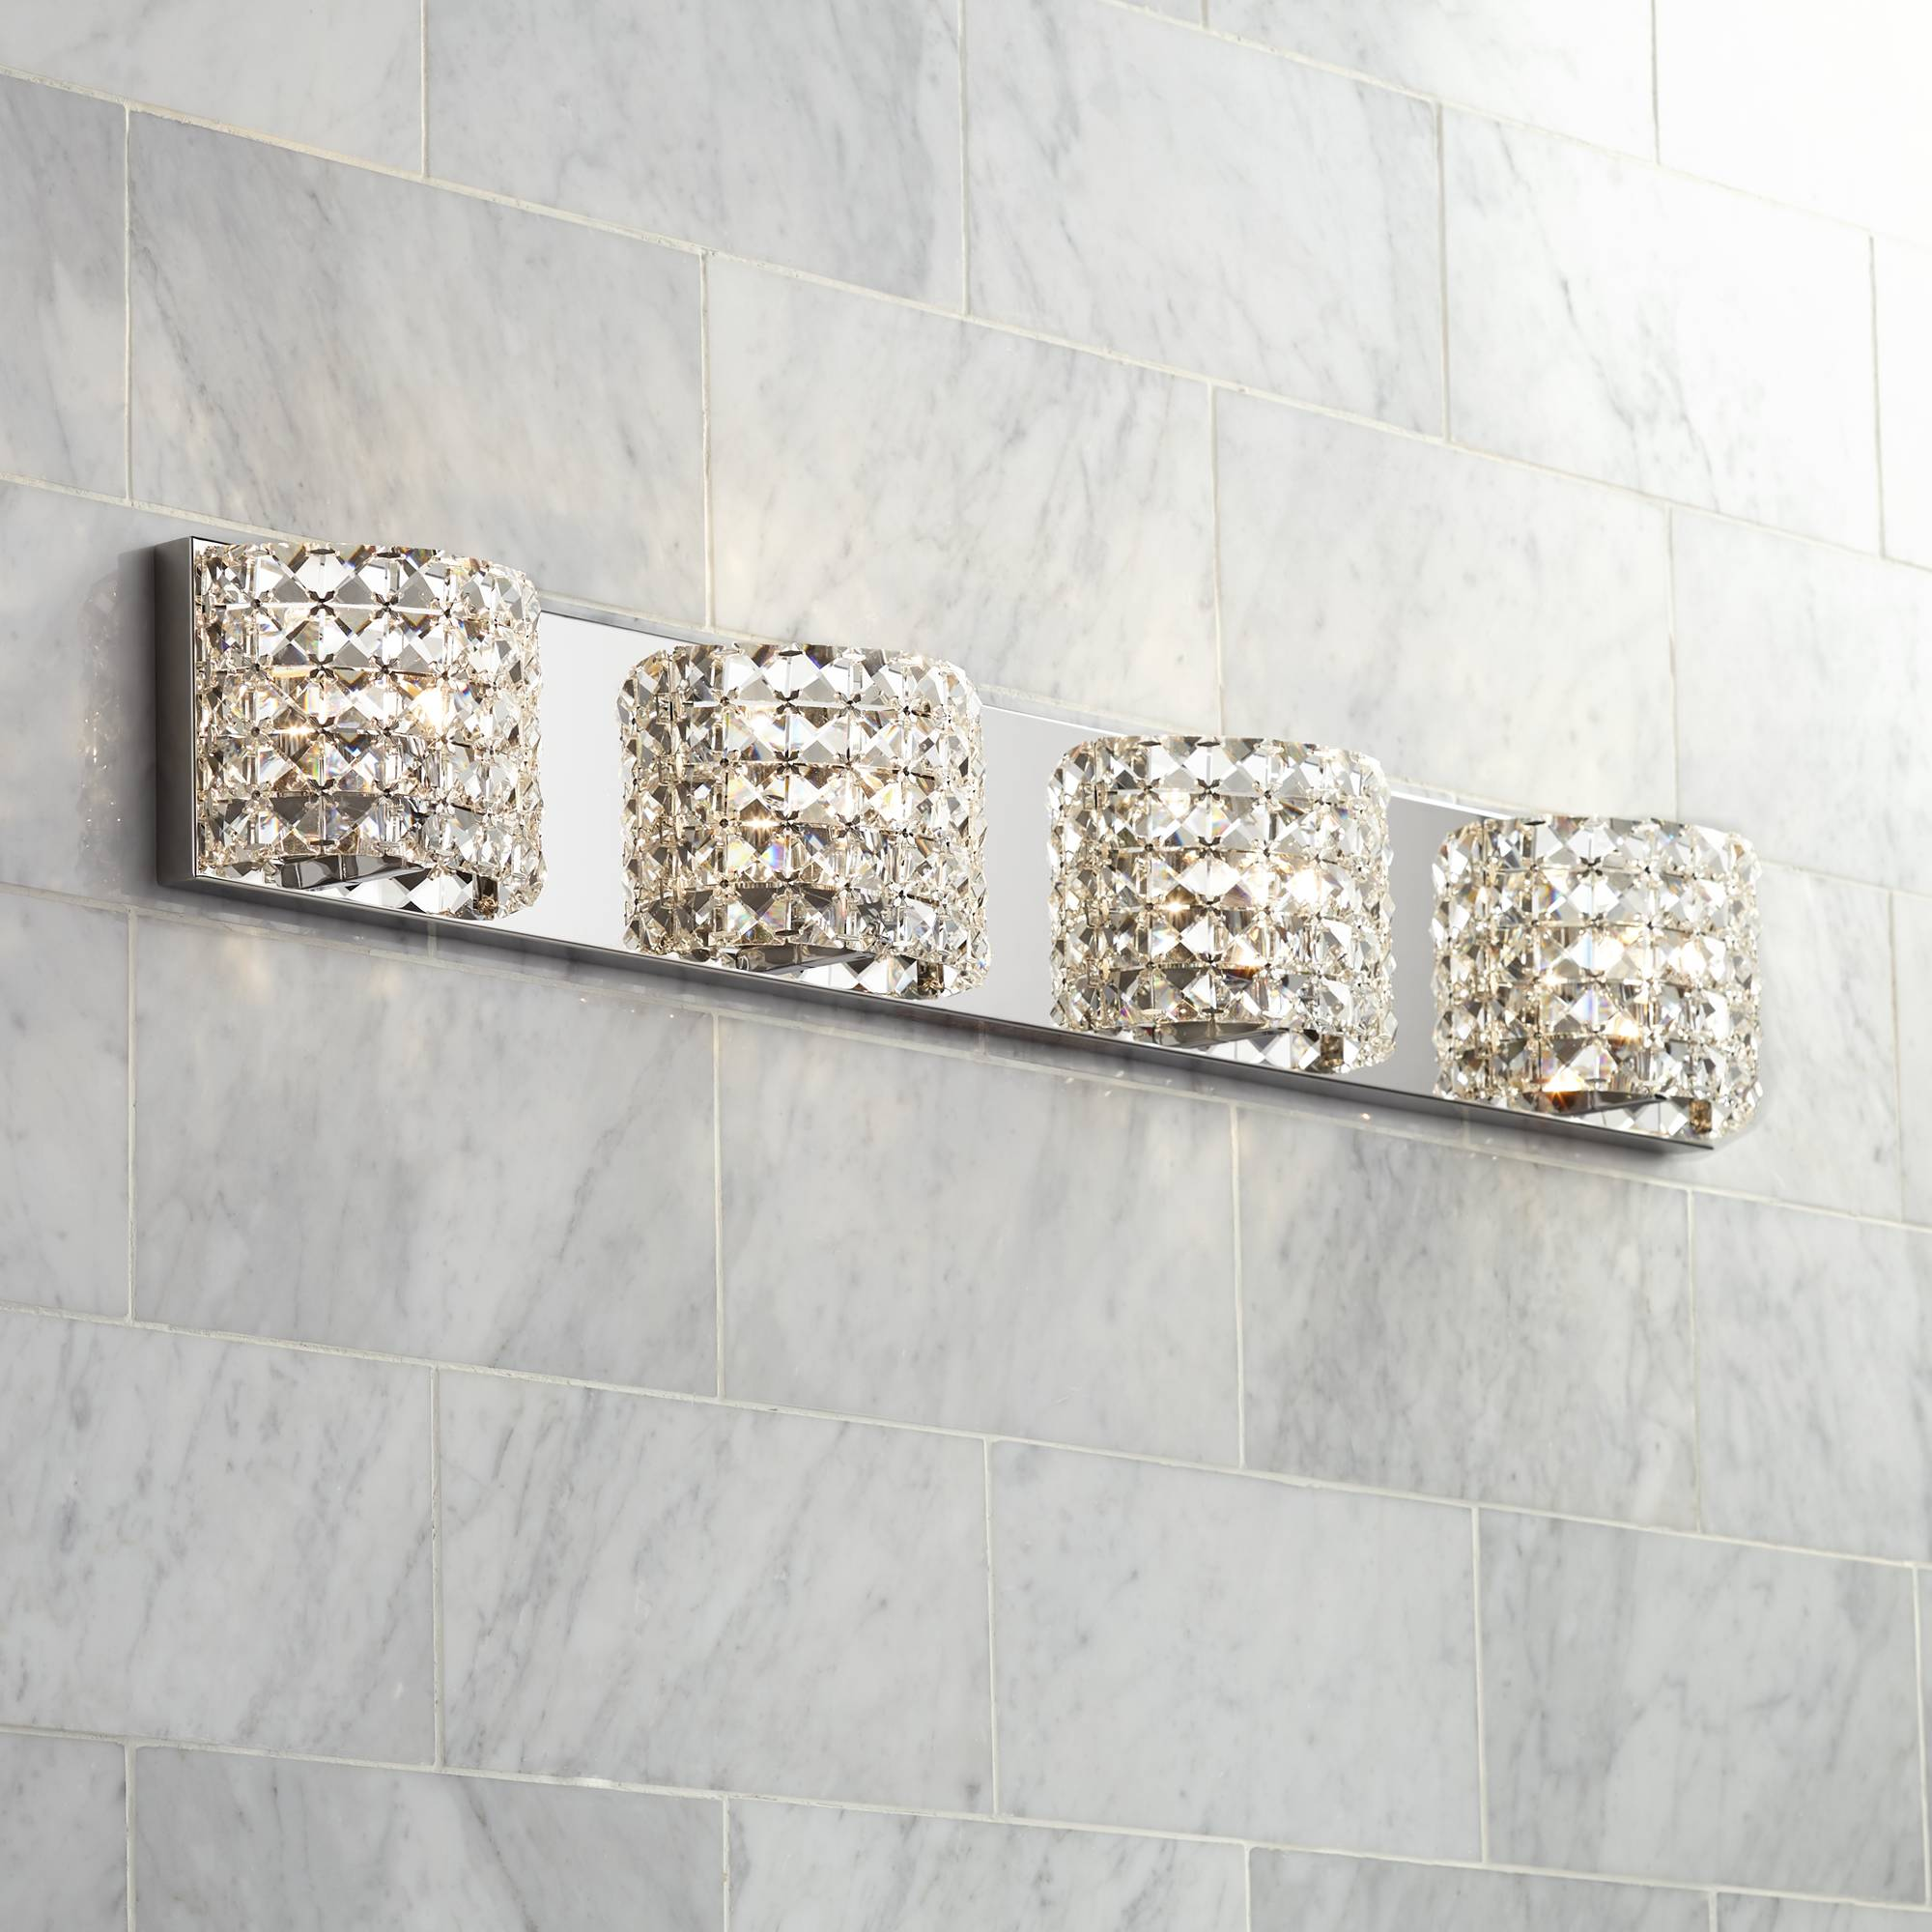 Details About Modern Wall Light Chrome 35 1 2 4 Fixture Crystal Bathroom Vanity